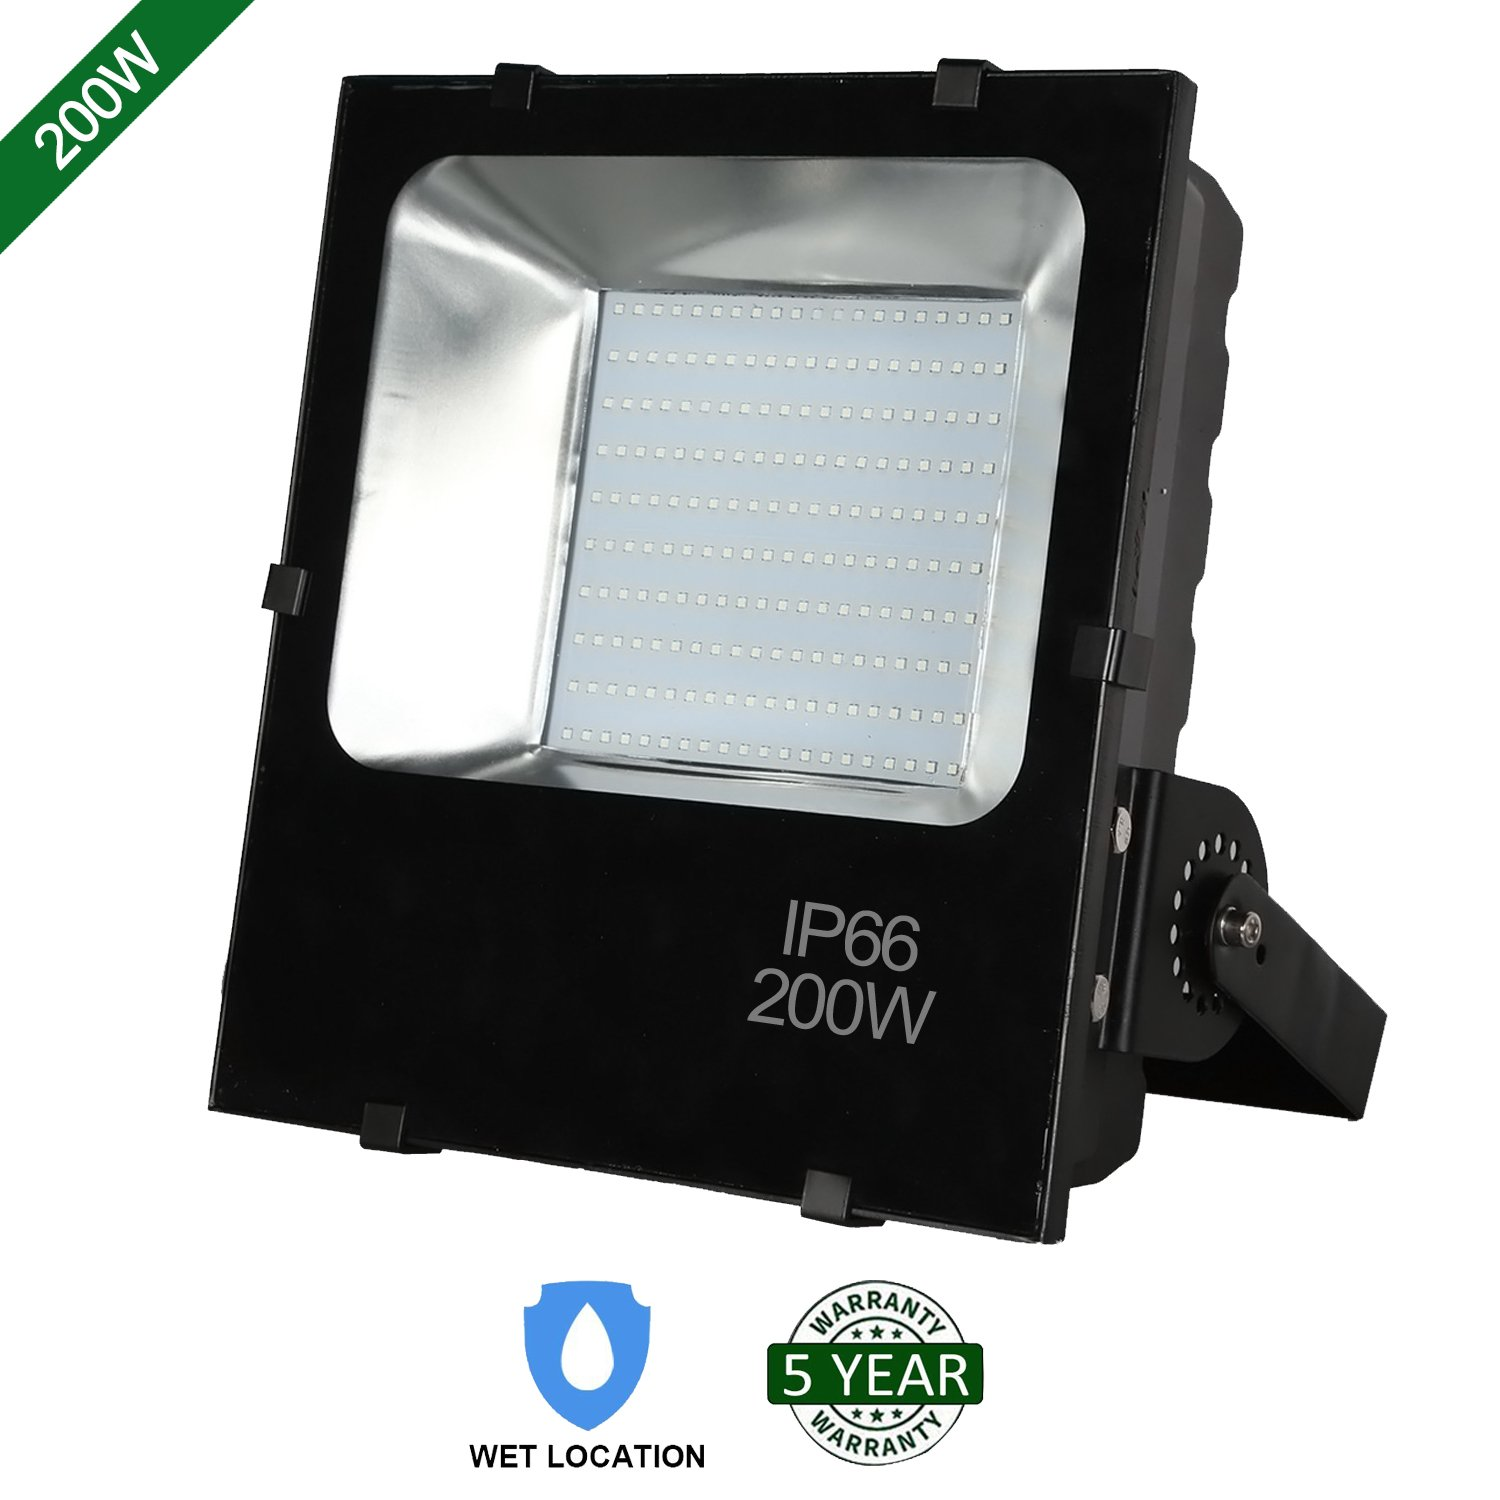 Hykolity 200W LED Flood Light Outdoor Security Light Weatherproof Parking Lot Warehouse Perimeter Lighting Fixture [1000W Equivalent] High Power 20000lm 5000k Residential/Commercial Use by hykolity